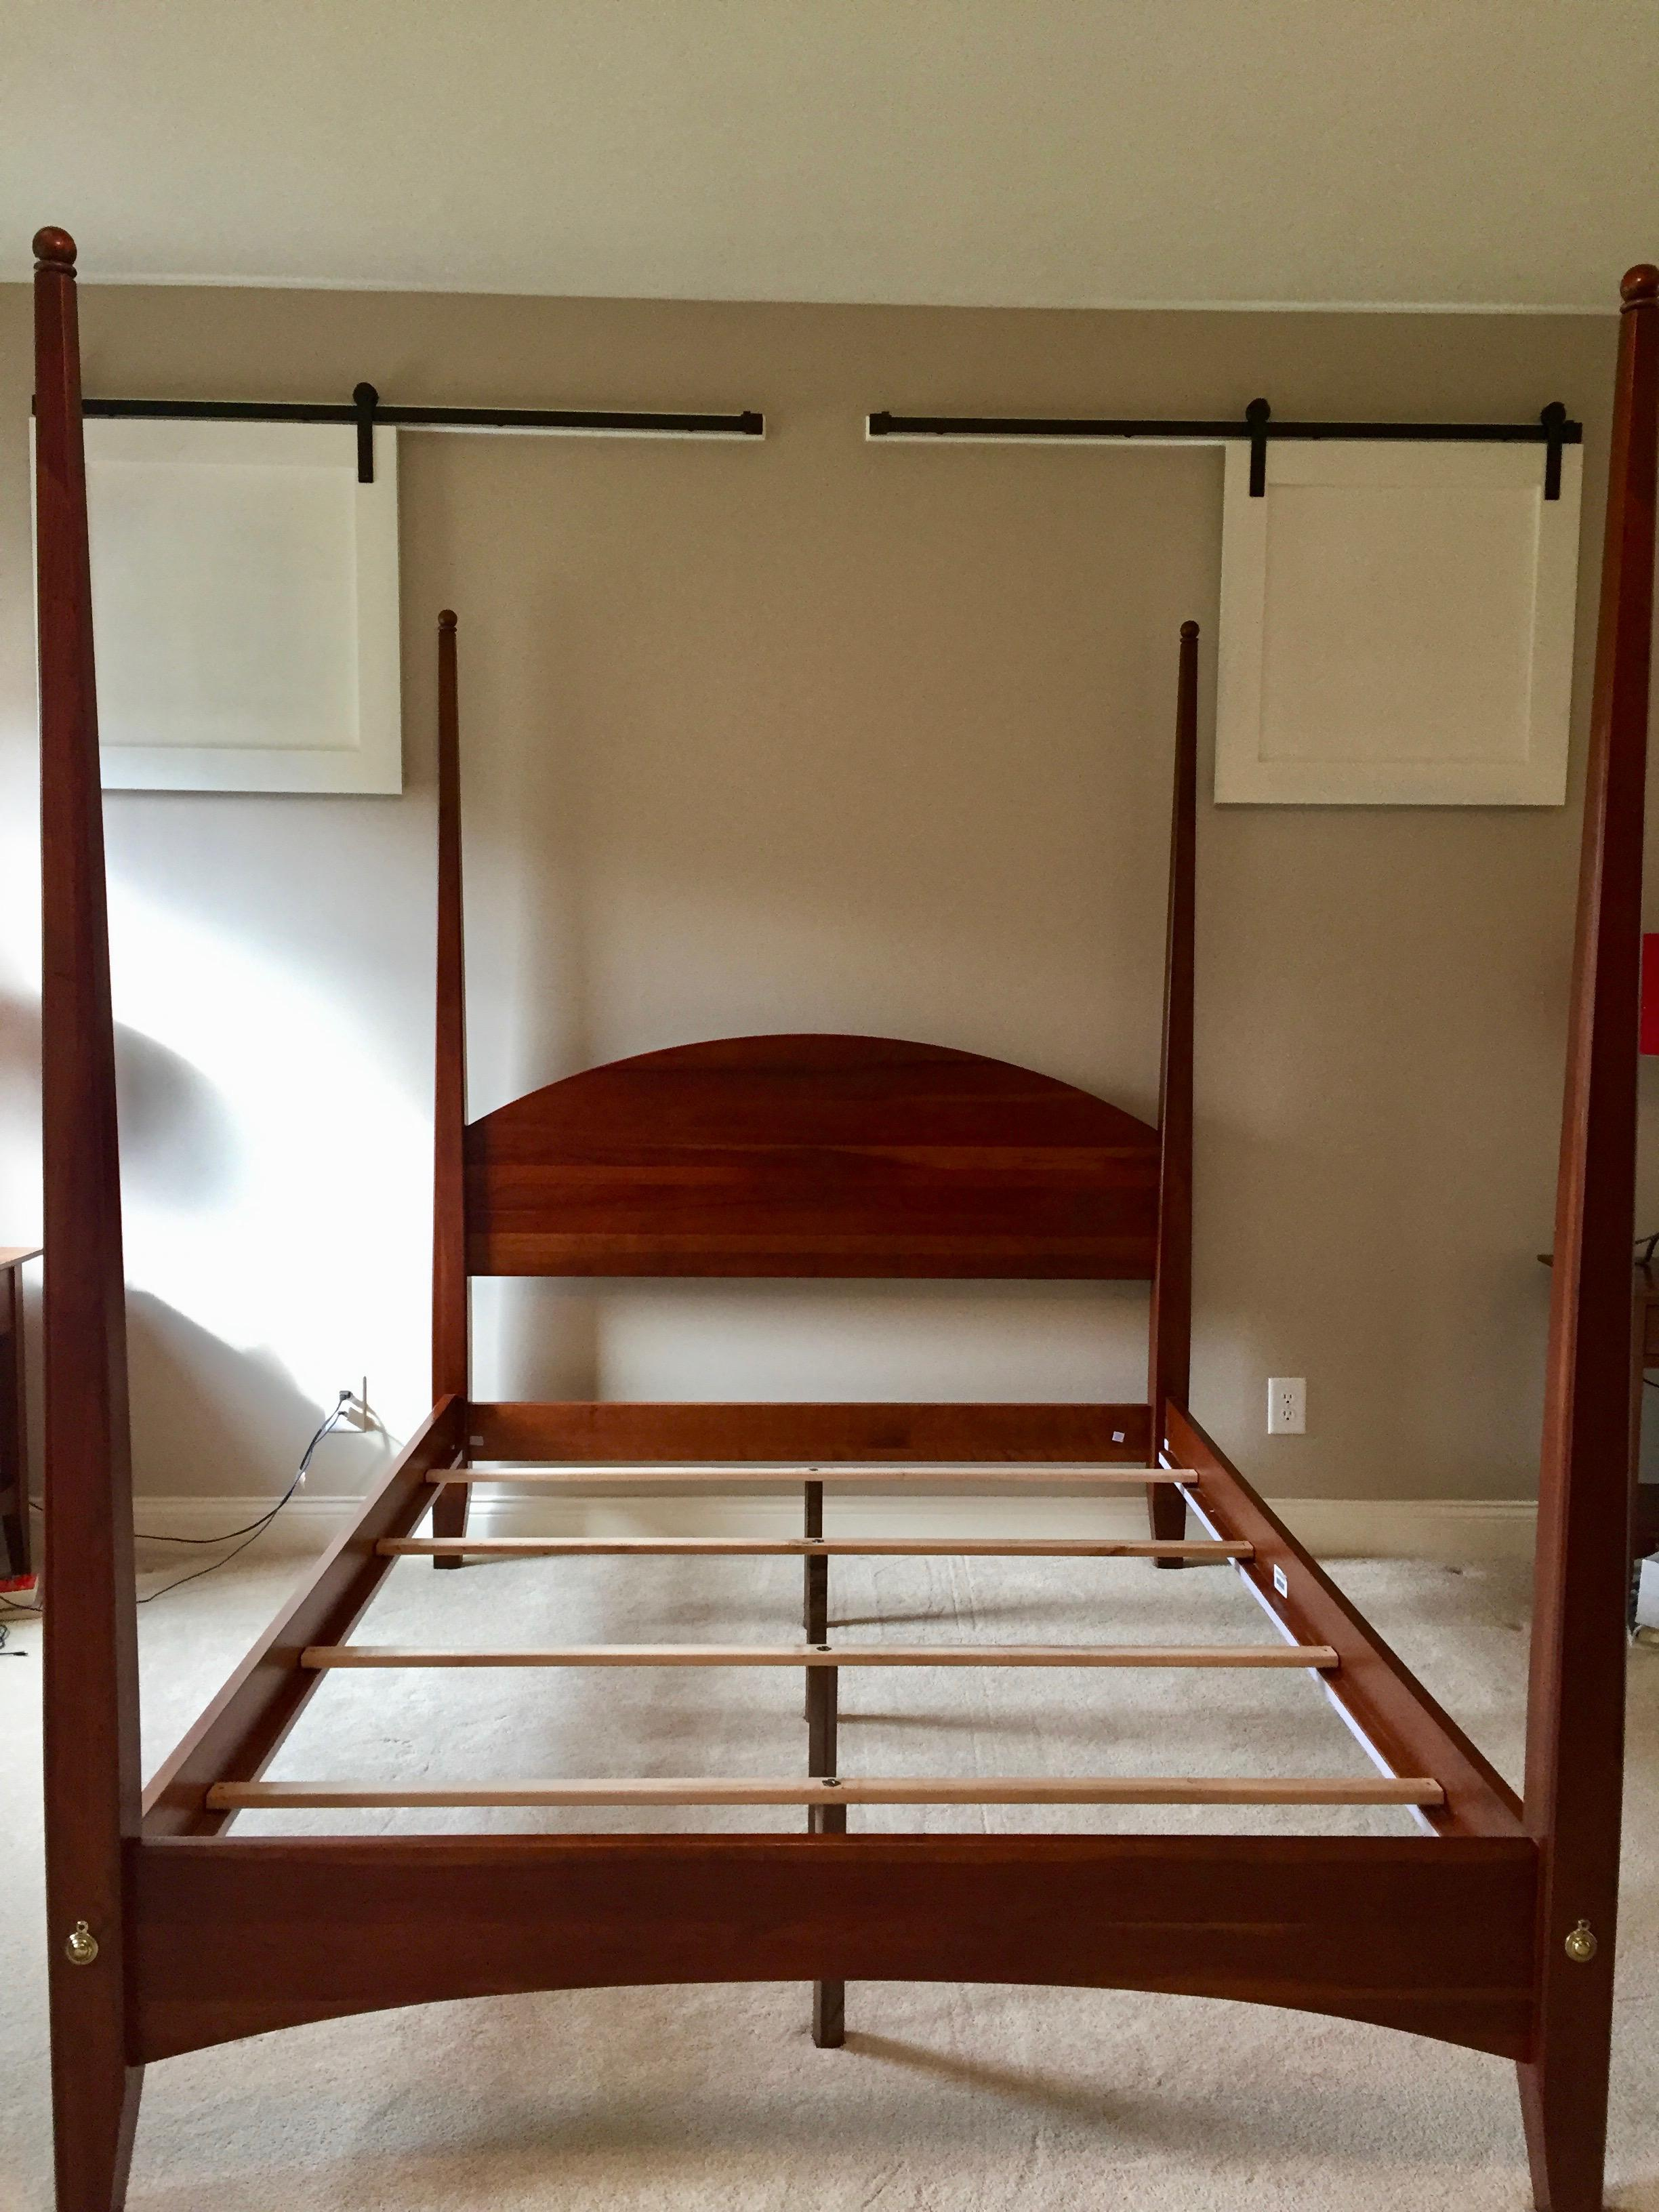 ethan allen cherry american impressions four poster bed with canopy